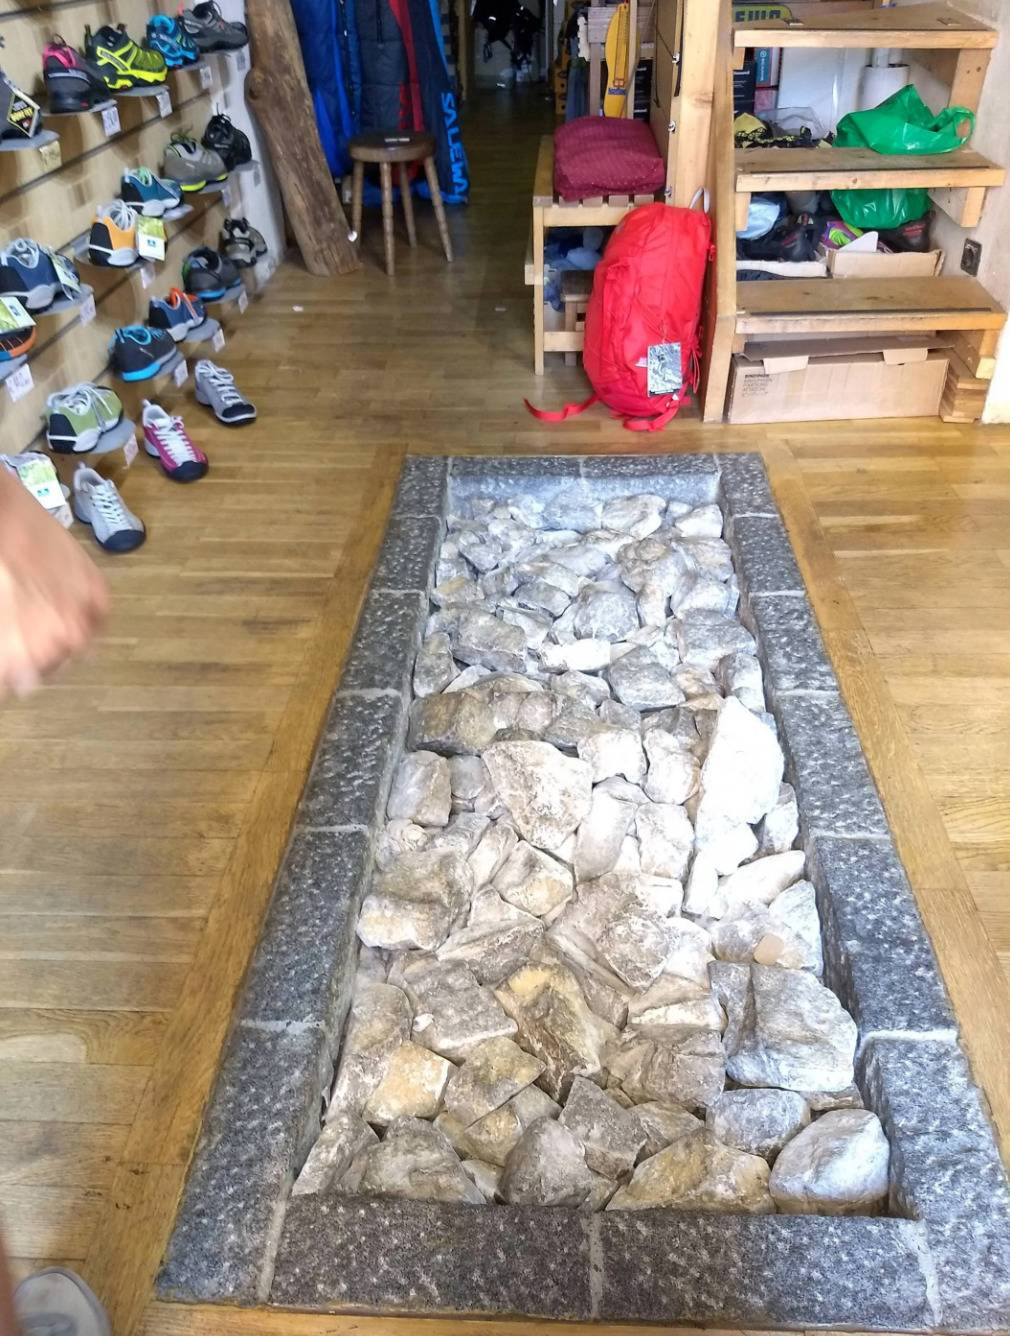 rock testing space near hiking shoes in store